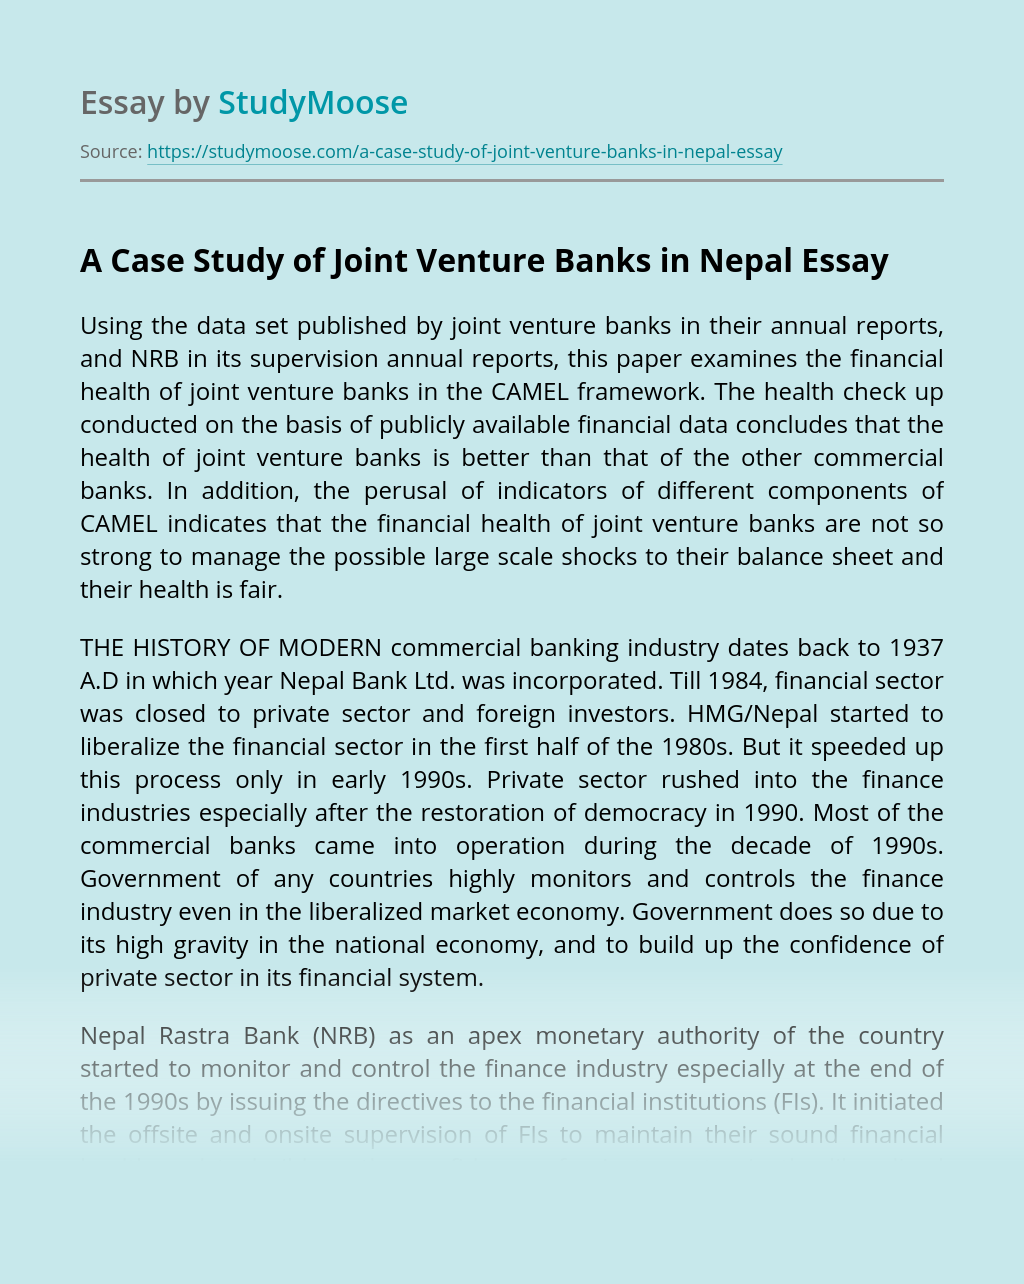 A Case Study of Joint Venture Banks in Nepal